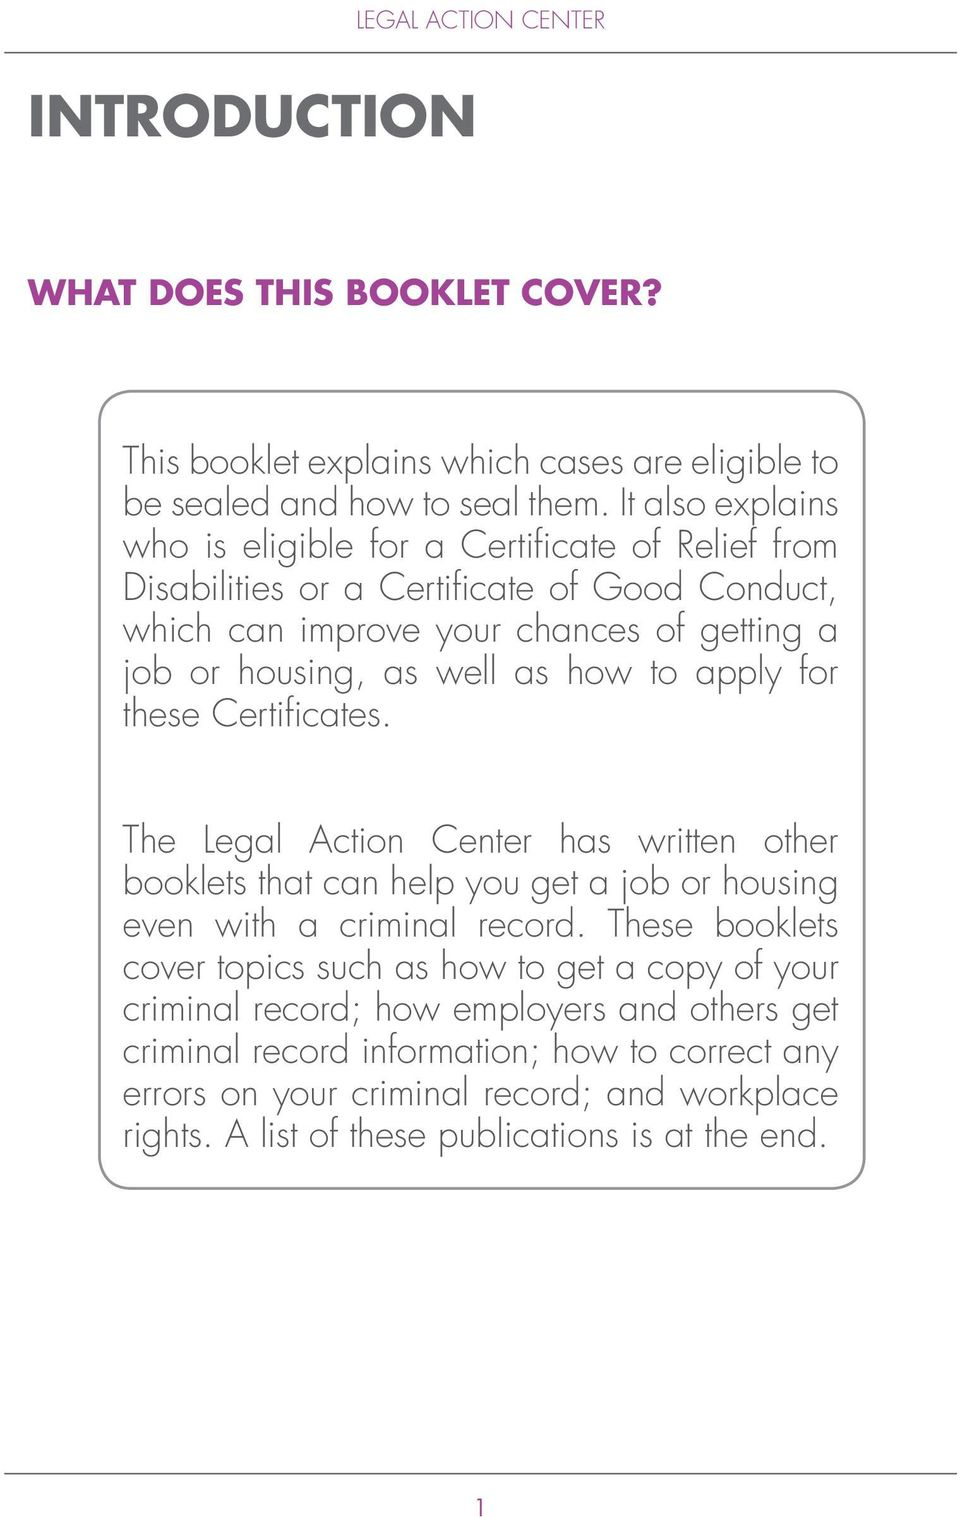 how to apply for these Certificates. The Legal Action Center has written other booklets that can help you get a job or housing even with a criminal record.